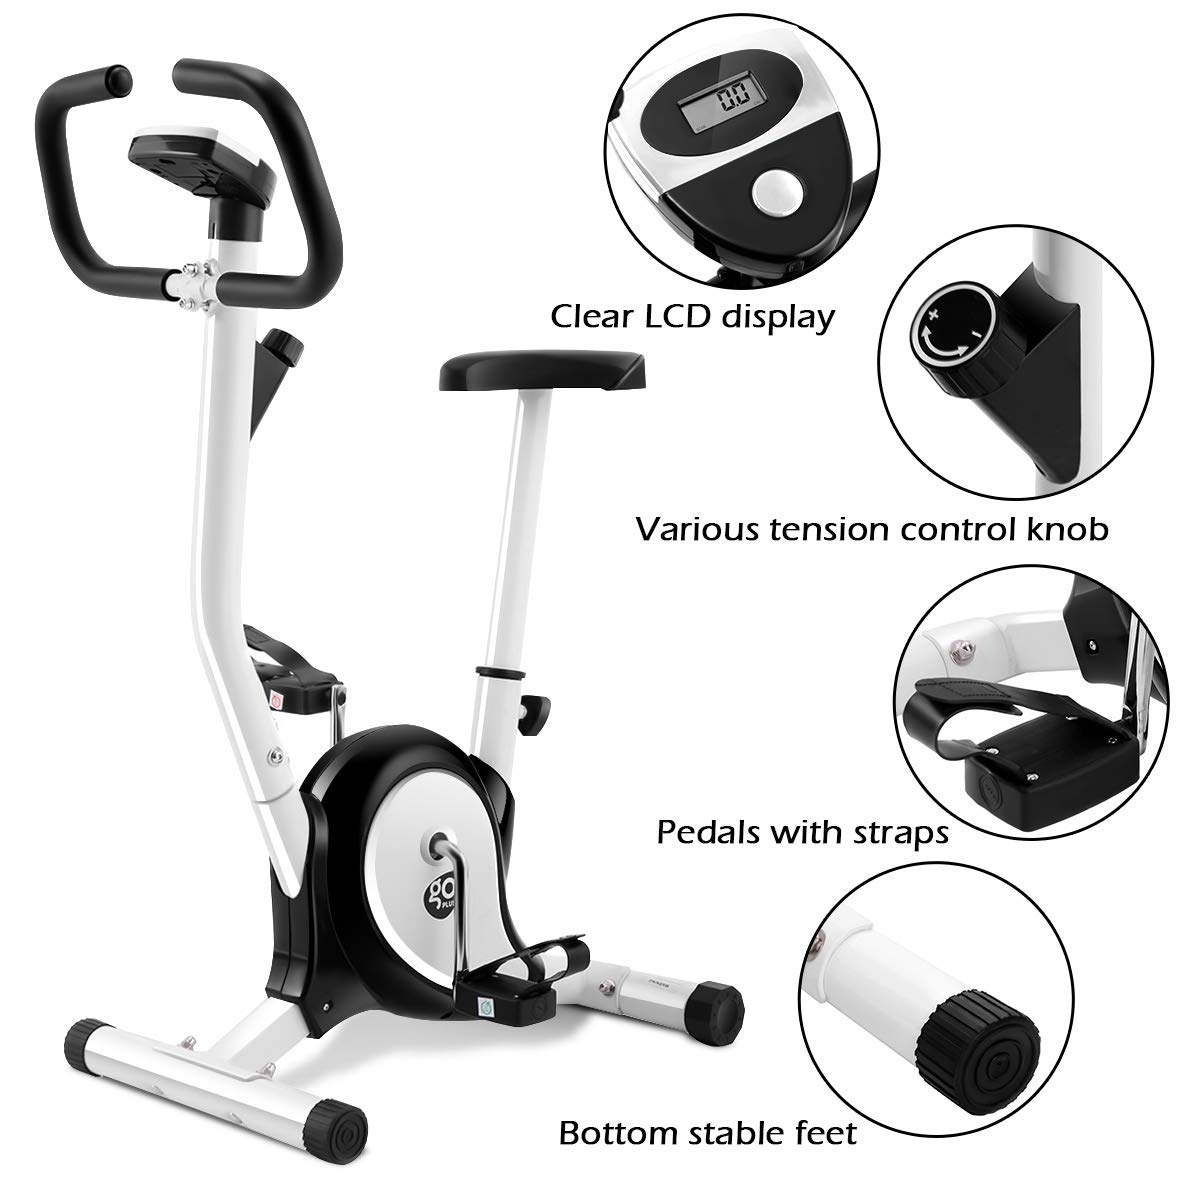 Goplus Upright Exercise Bike Magnetic Stationary Cycling Fitness Cardio Aerobic Equipment (White + Black) by Goplus (Image #1)